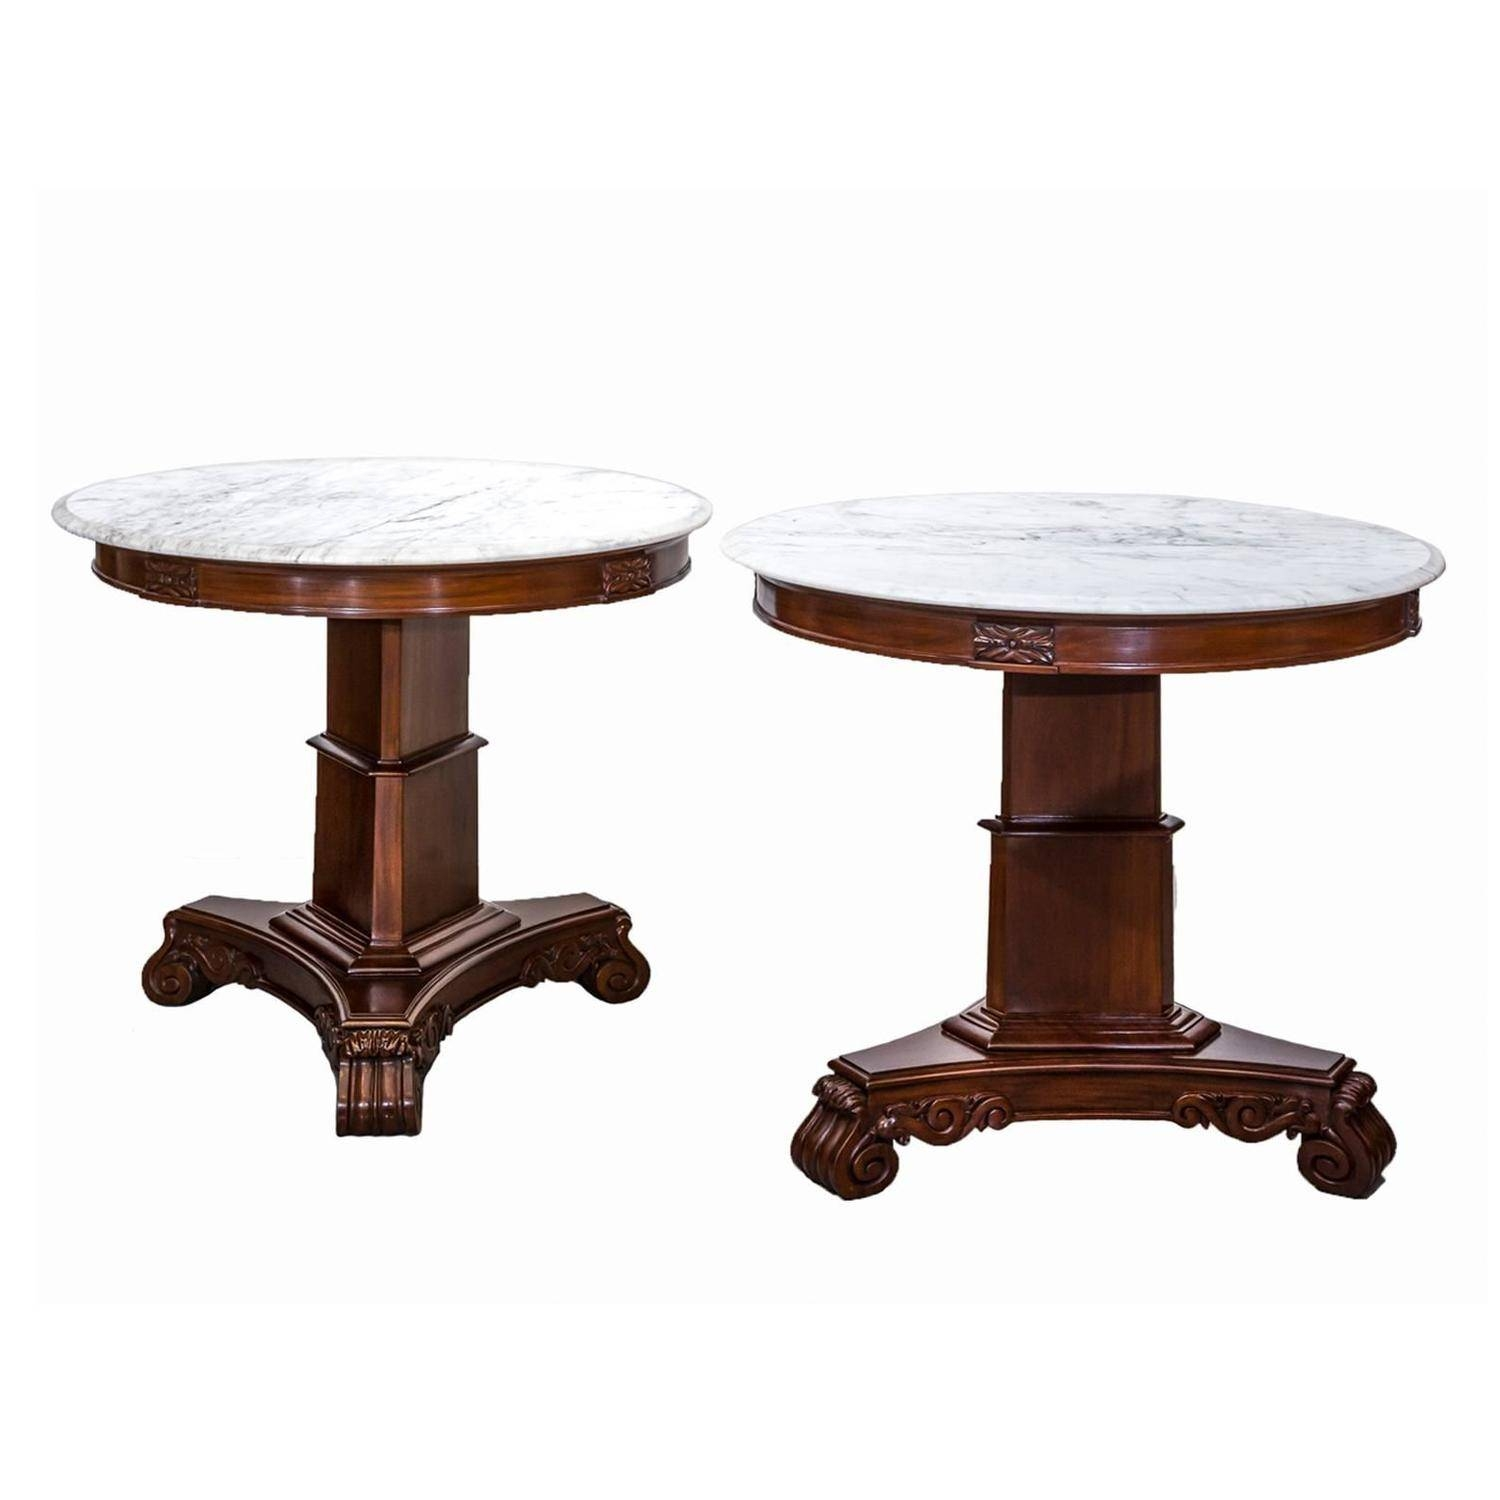 Pair Of Antique Anglo-Indian Or British Colonial Mahogany Side with Colonial Coffee Tables (Image 25 of 30)